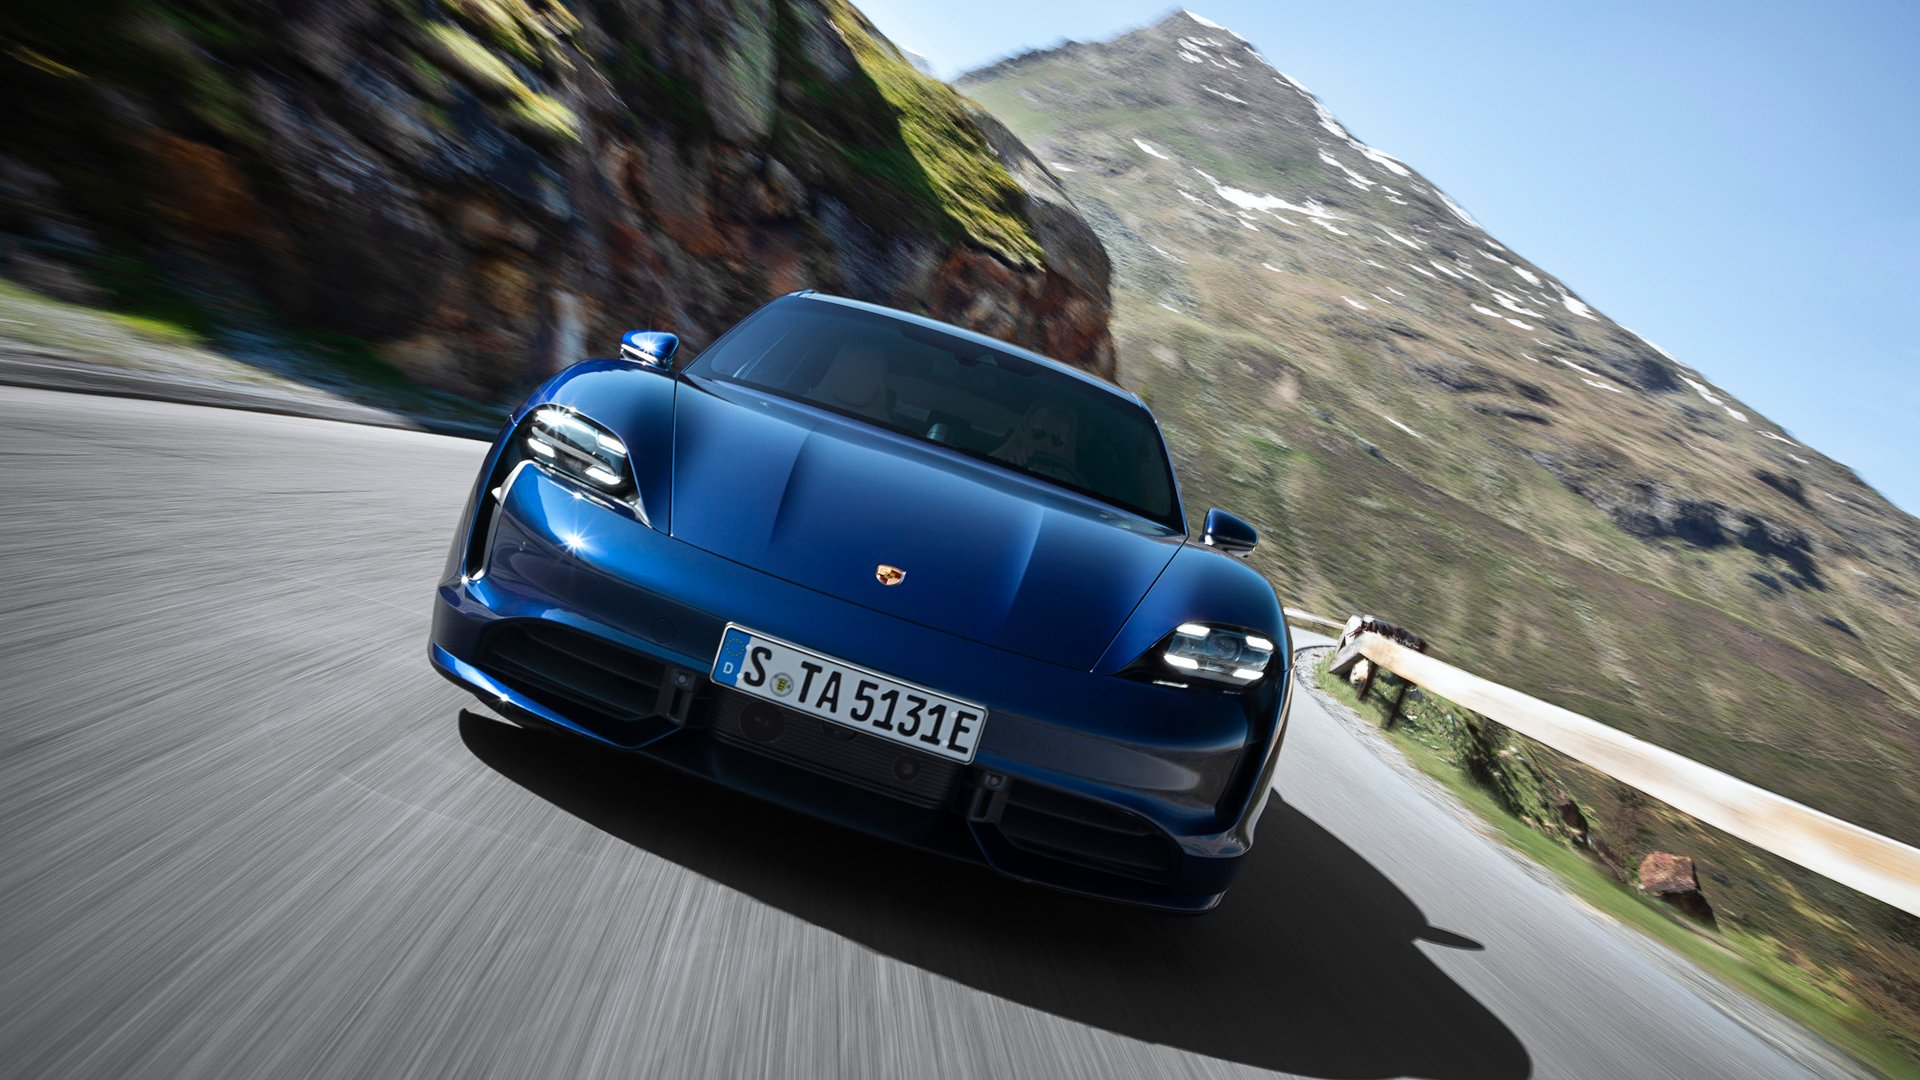 Showcase cover image for 2020 Porsche Taycan